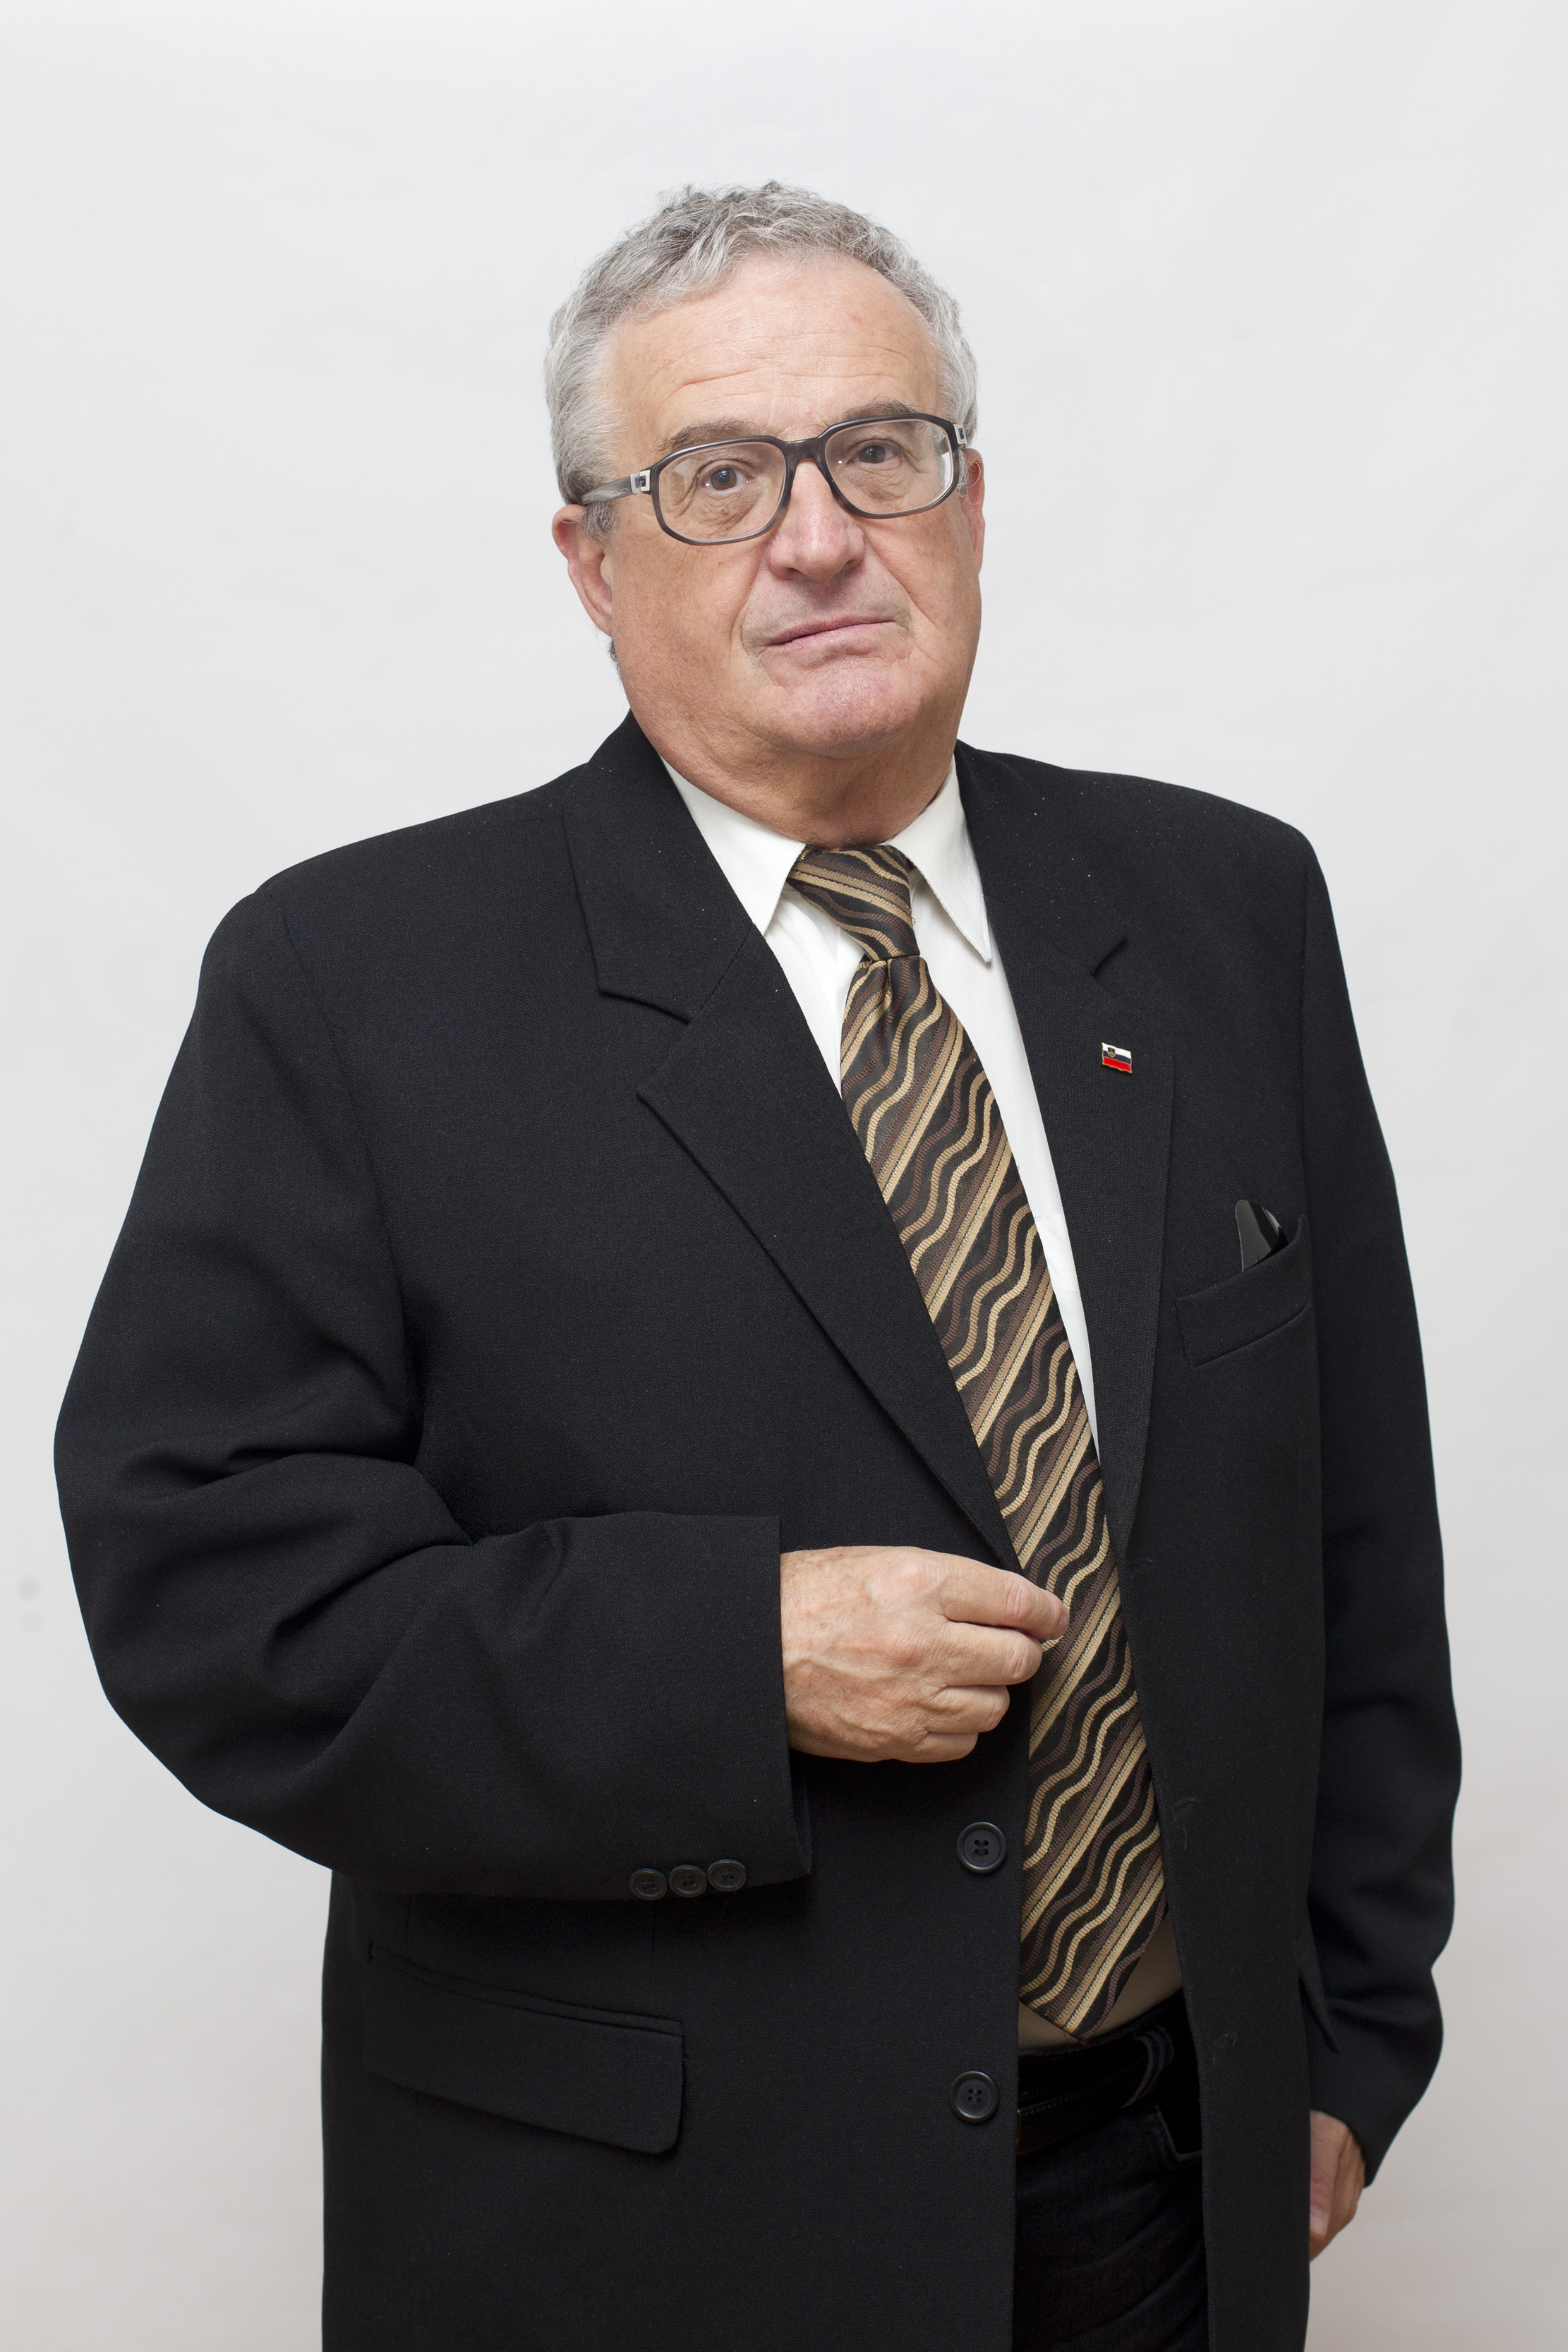 Assistant professor dr. Peter Pavel Klasinc